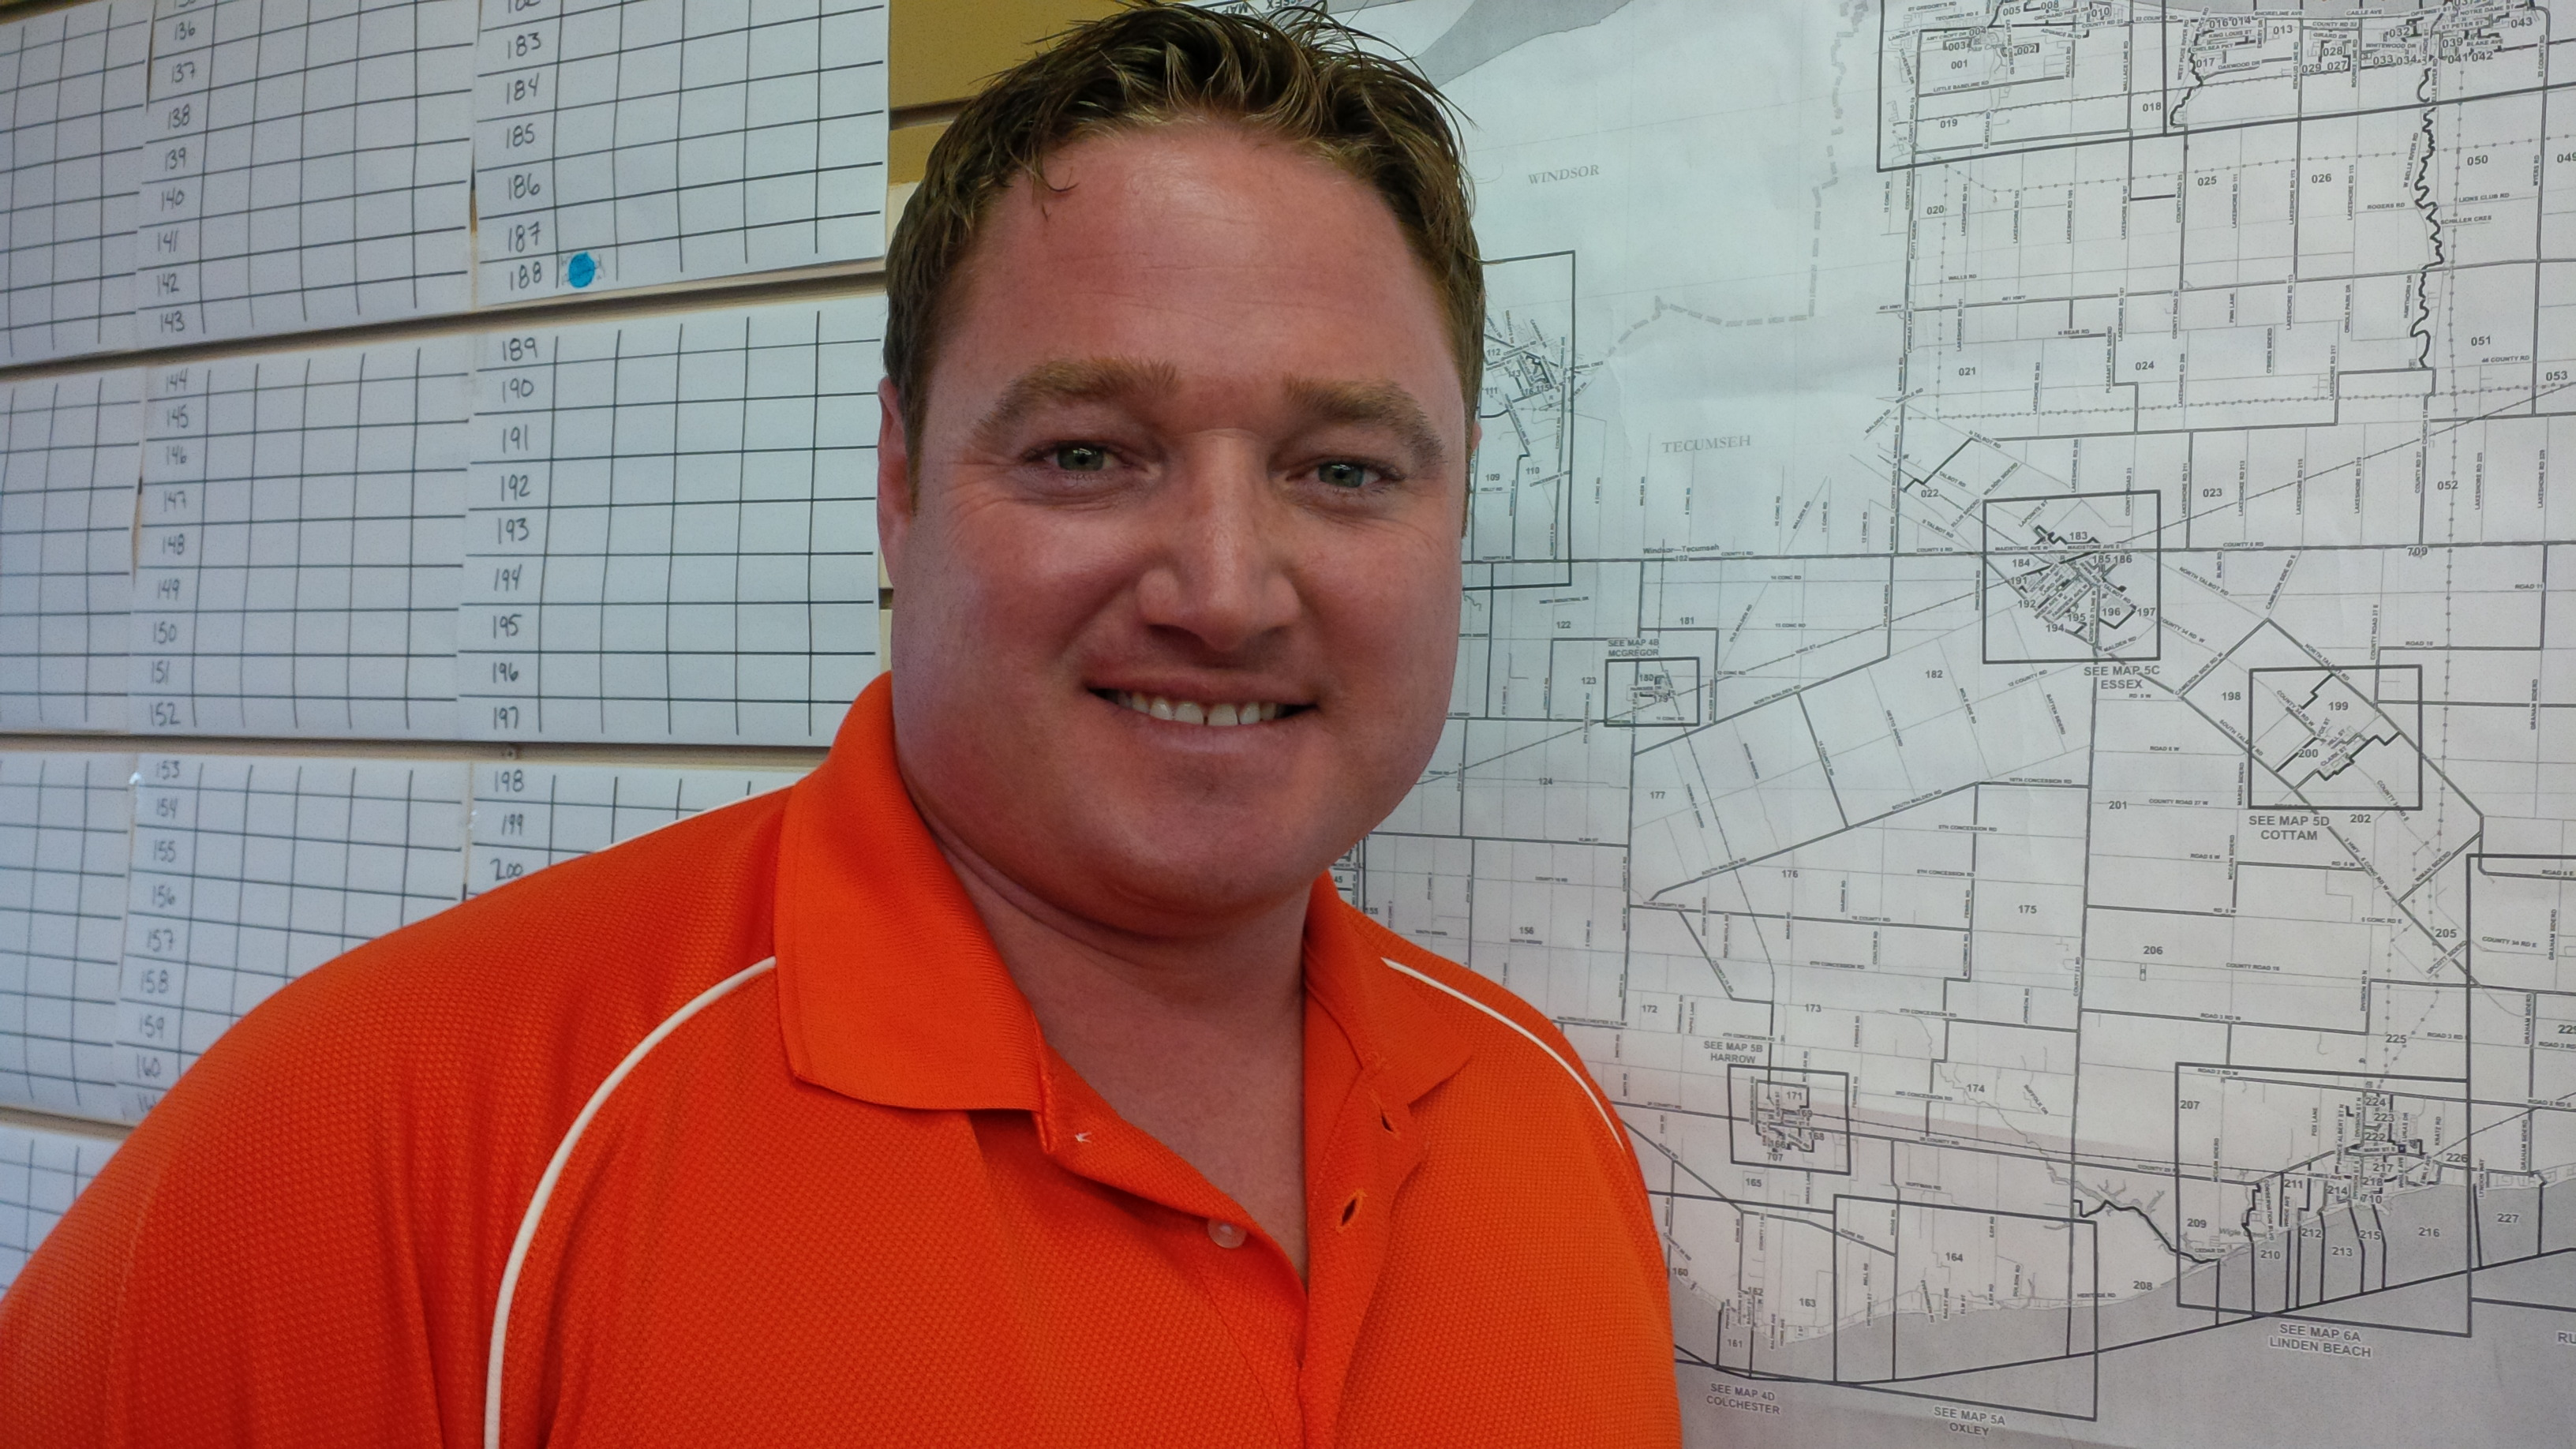 Taras Natyshak is the NDP candidate for the Essex riding in Ontario's 2014 election. (Photo by Ricardo Veneza)